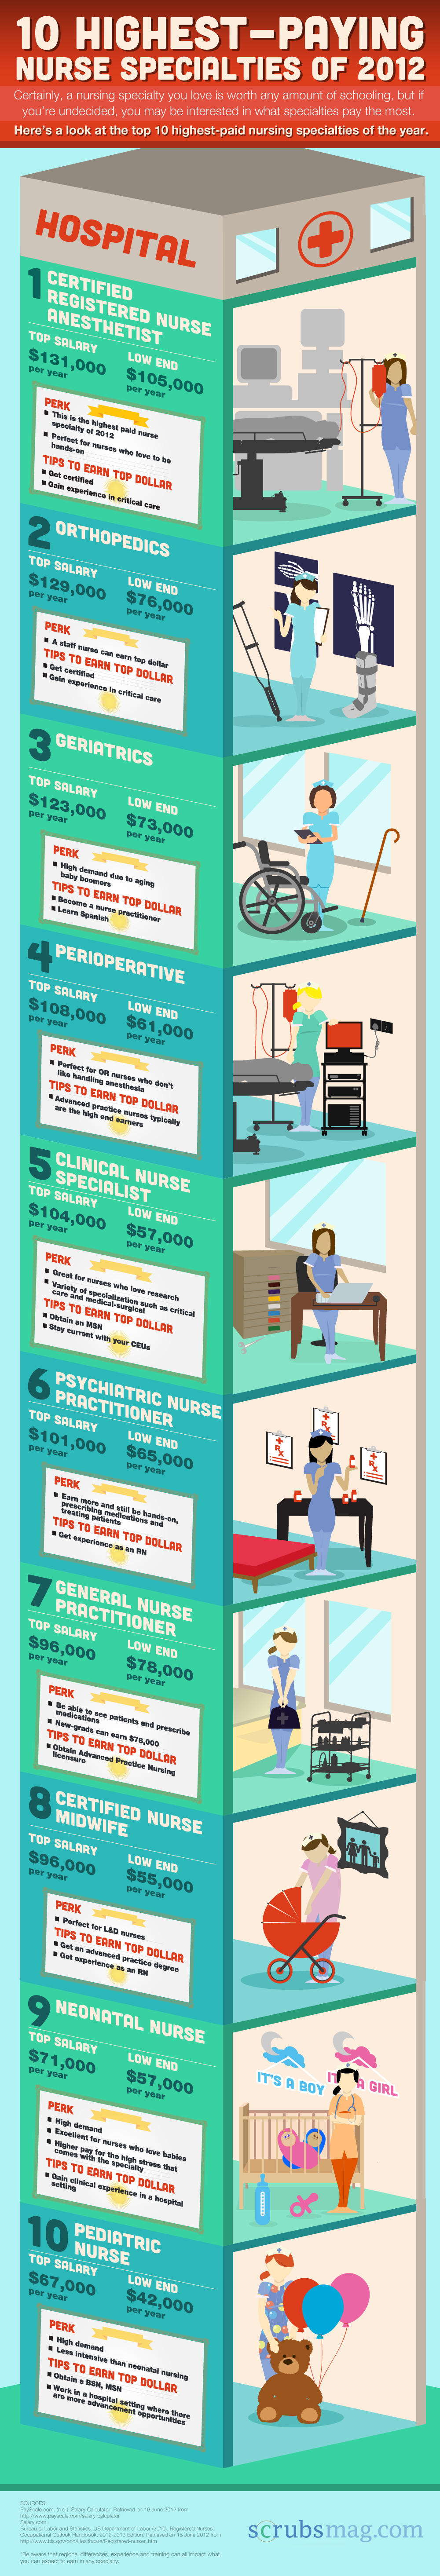 Highest-paying nurse specialties | Scrubs - The Leading Lifestyle ...